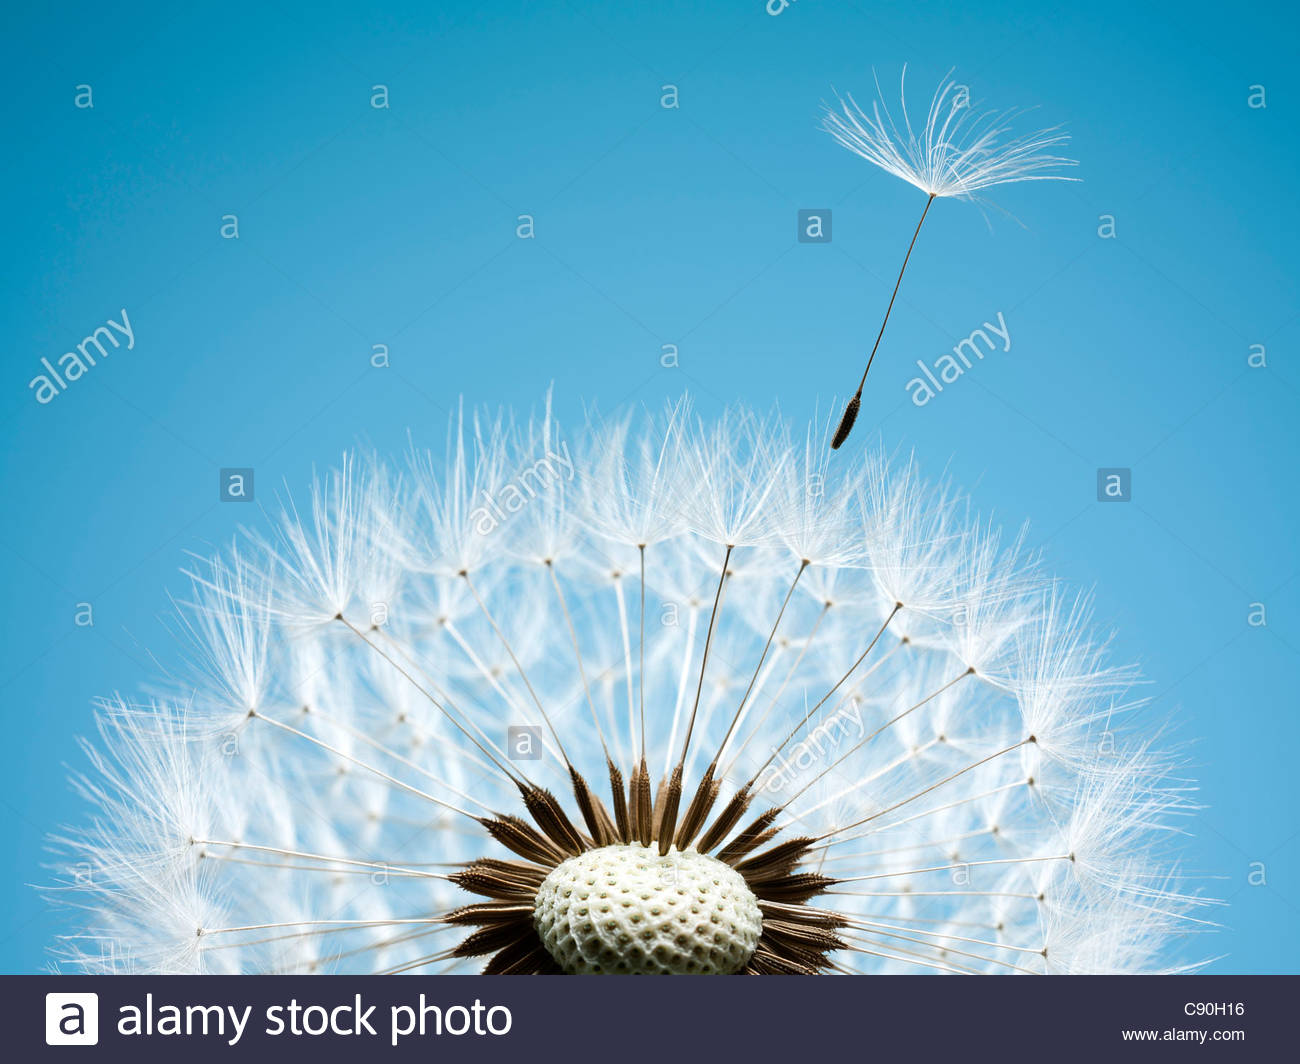 Close up of dandelion spores blowing away - Stock Image